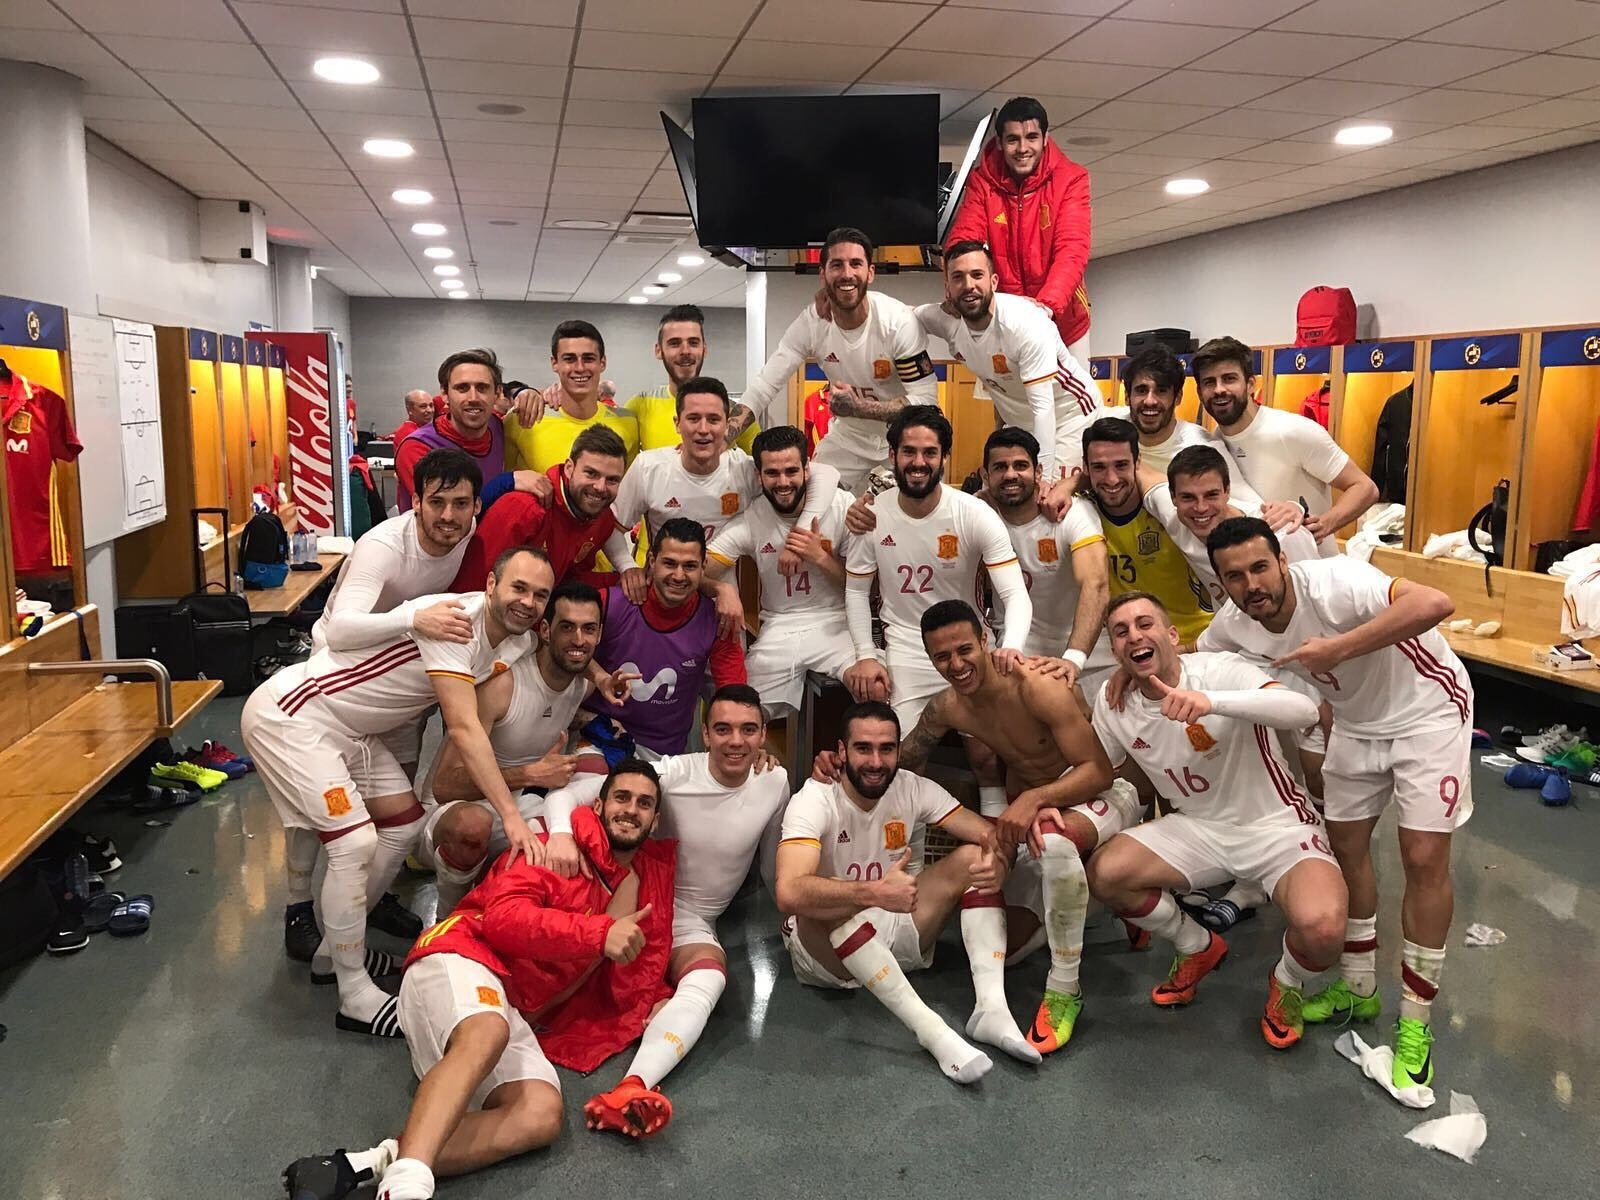 Grande Equipo!! �������� https://t.co/IAs5US6v09